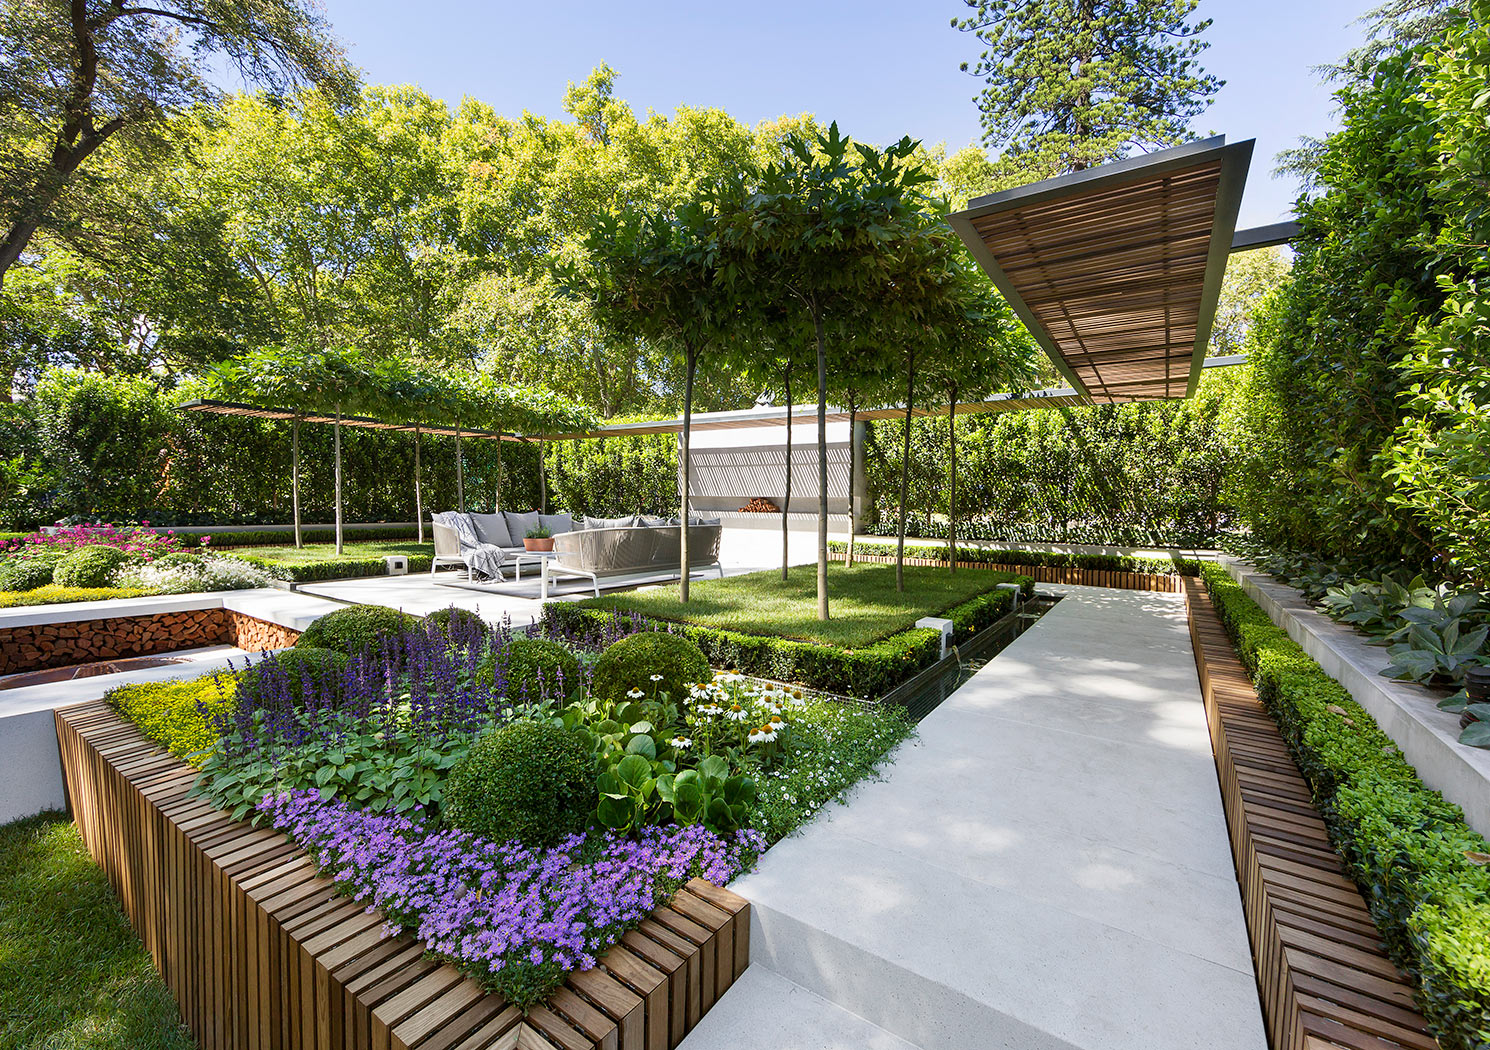 Landscape design melbourne nathan burkett design for Garden designs melbourne